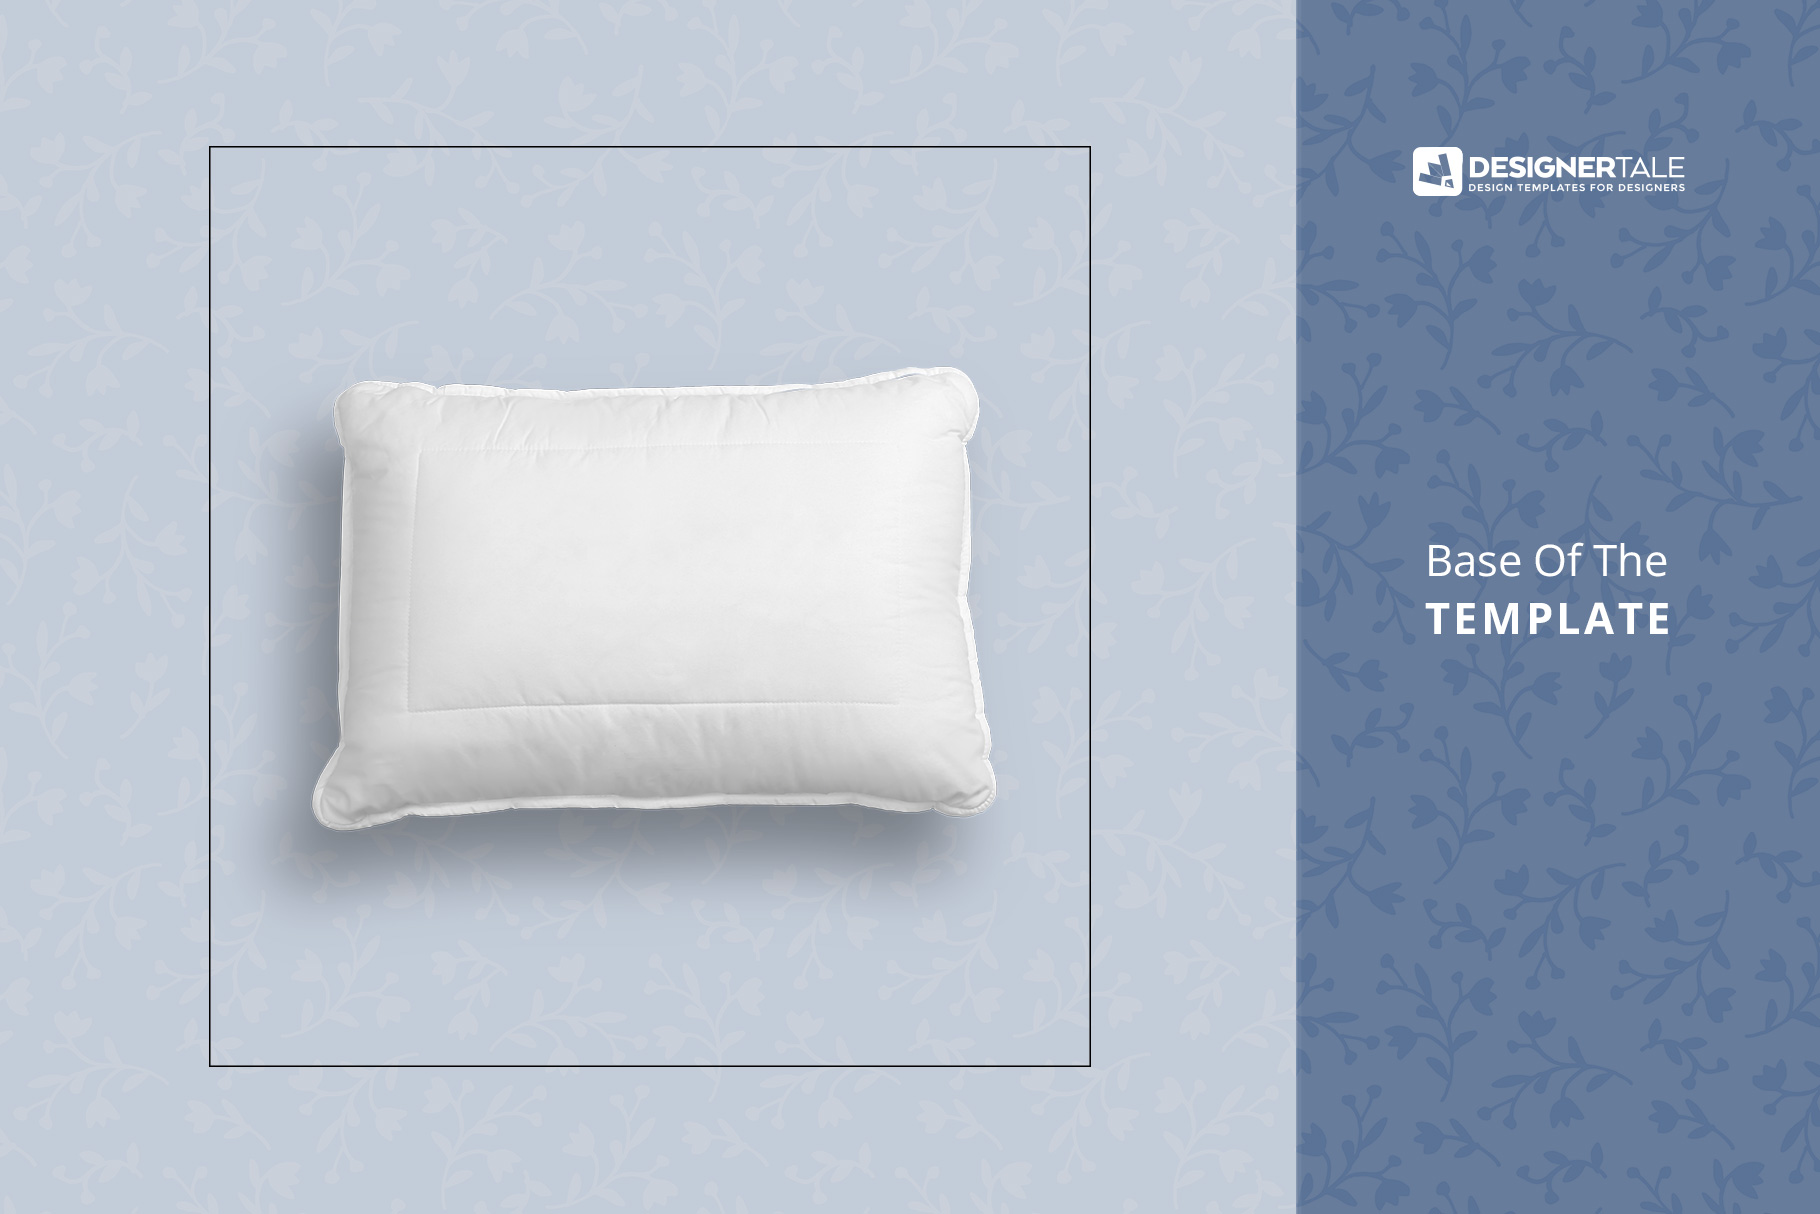 base of the soft bed pillow mockup